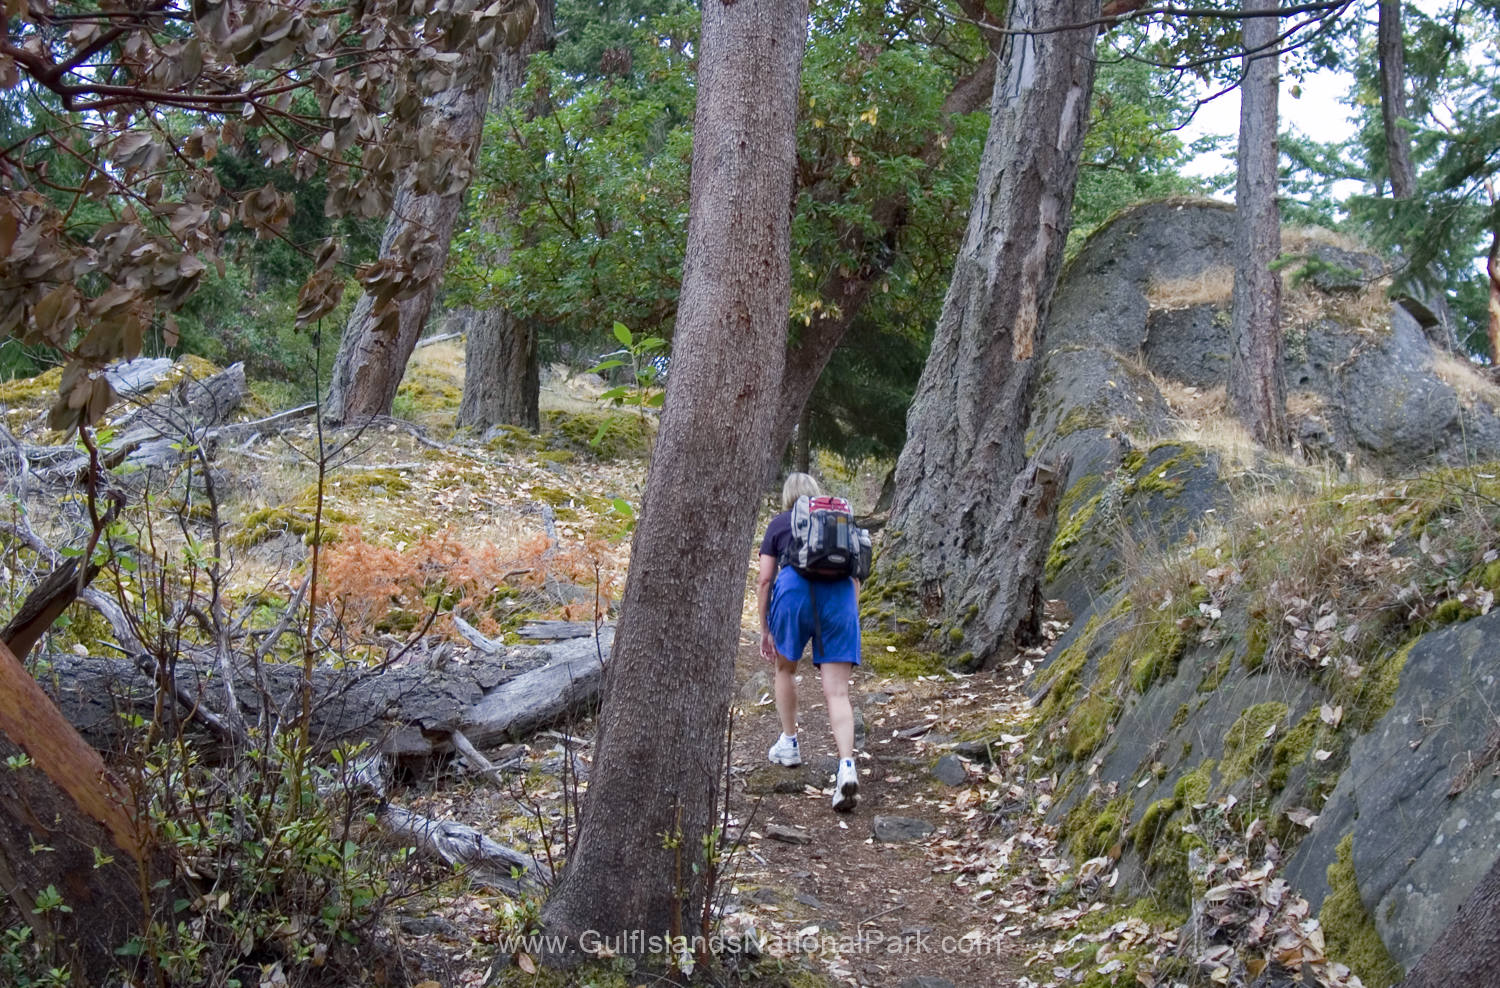 Hiking up Mt Norman, South Pender Island